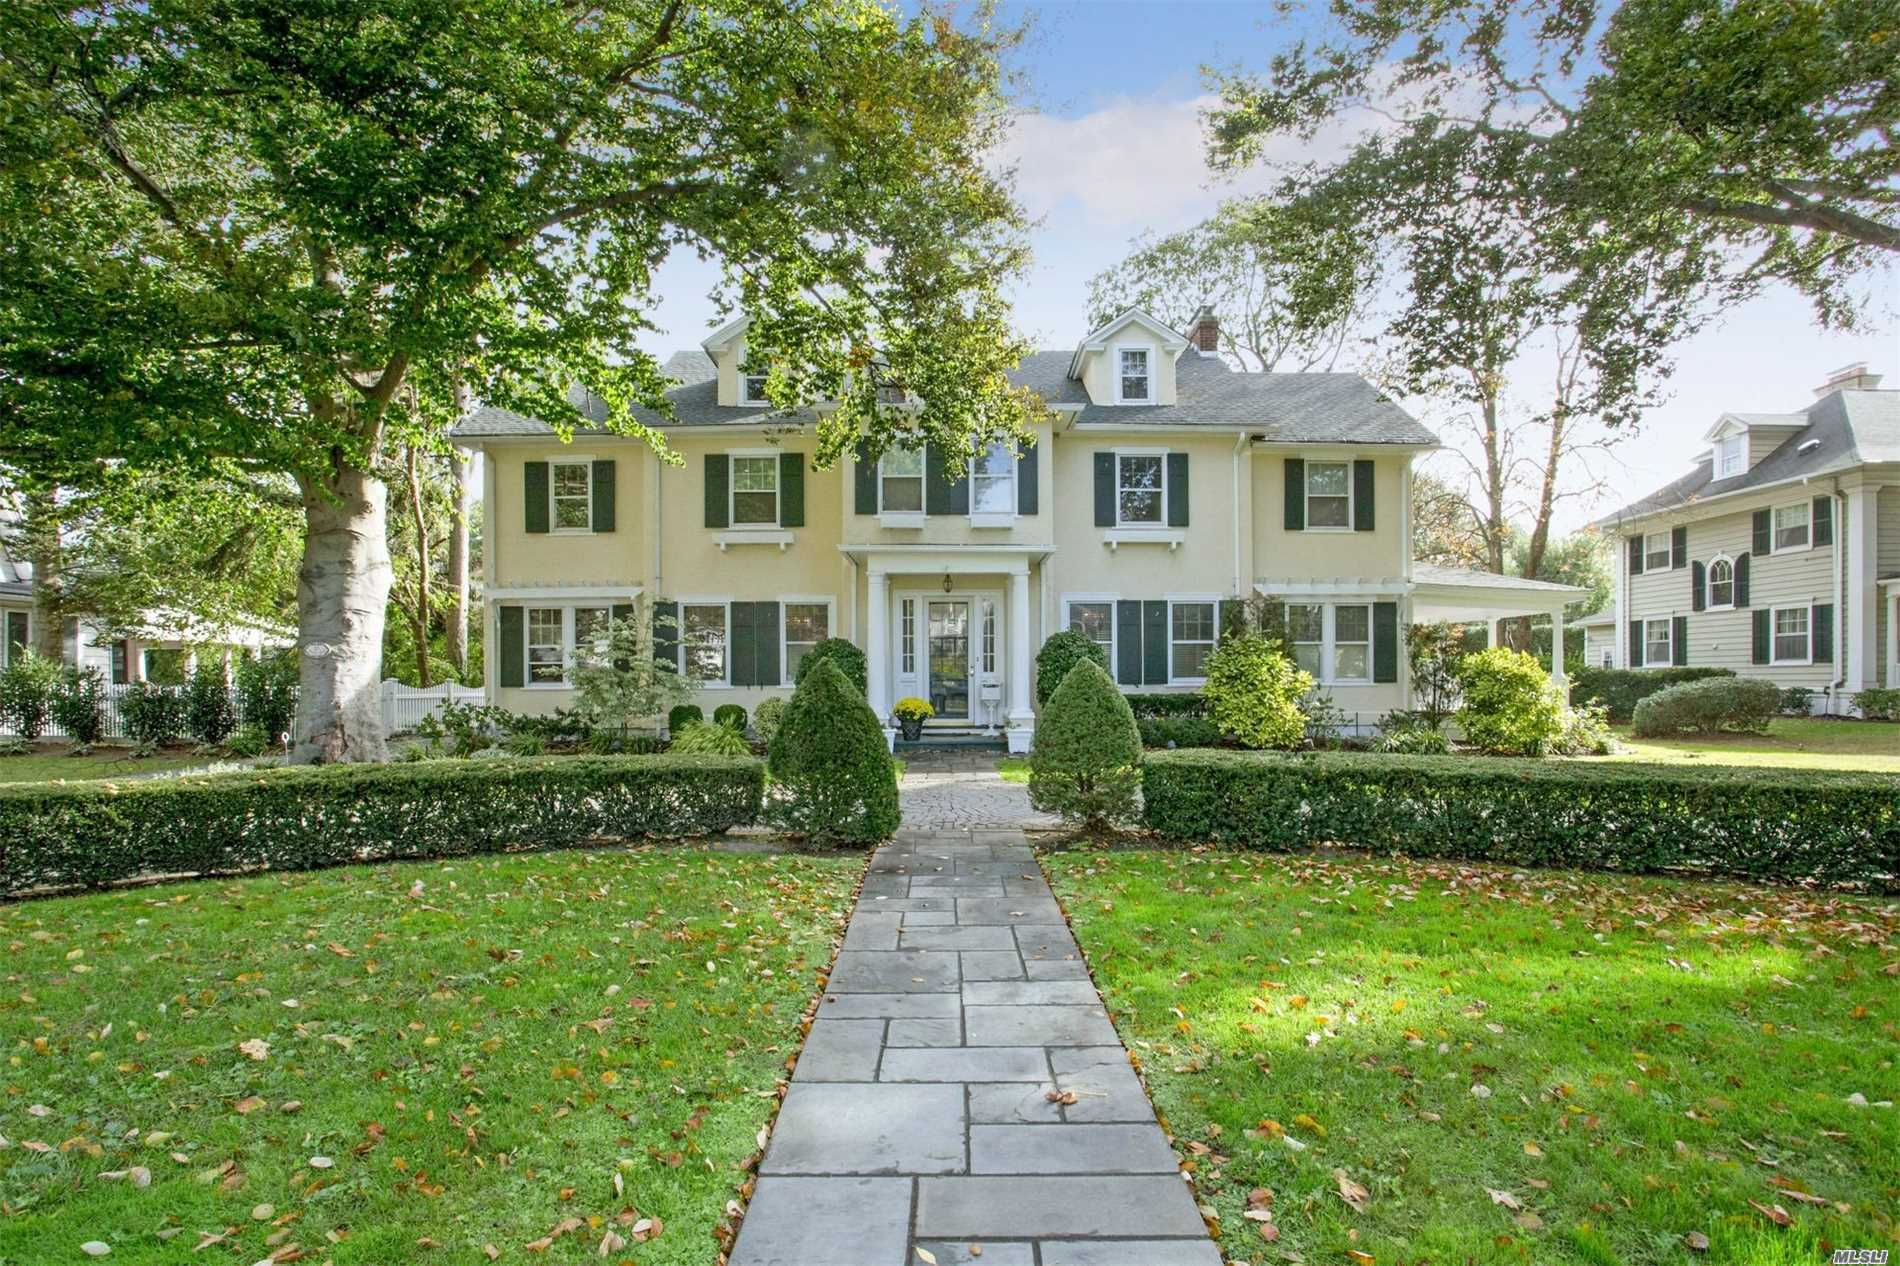 Old World Charm With Contemporary Practicality And Design. This 6 Bedroom, 5 Bath Elegant Colonial Offers Expansive 4, 000+Sq Feet Of Luxury Living Space. Sitting On 100X150 The Private Backyard Features Blues Stone Patio, Great For Entertaining. New Roof 2017